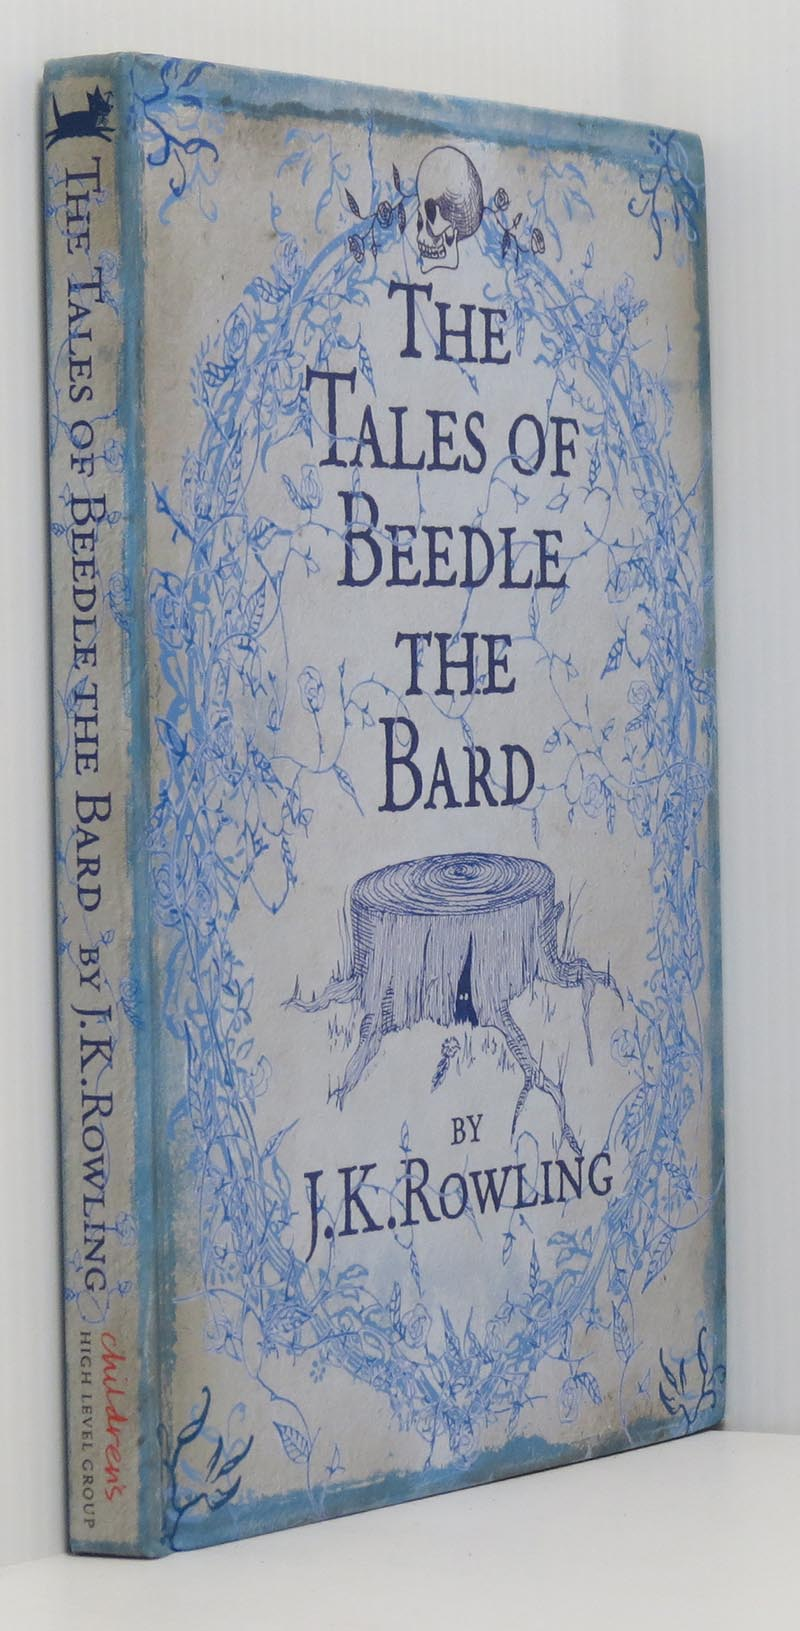 Image for The Tales of Beedle the Bard Translated from the Original Runes By Hermione Granger